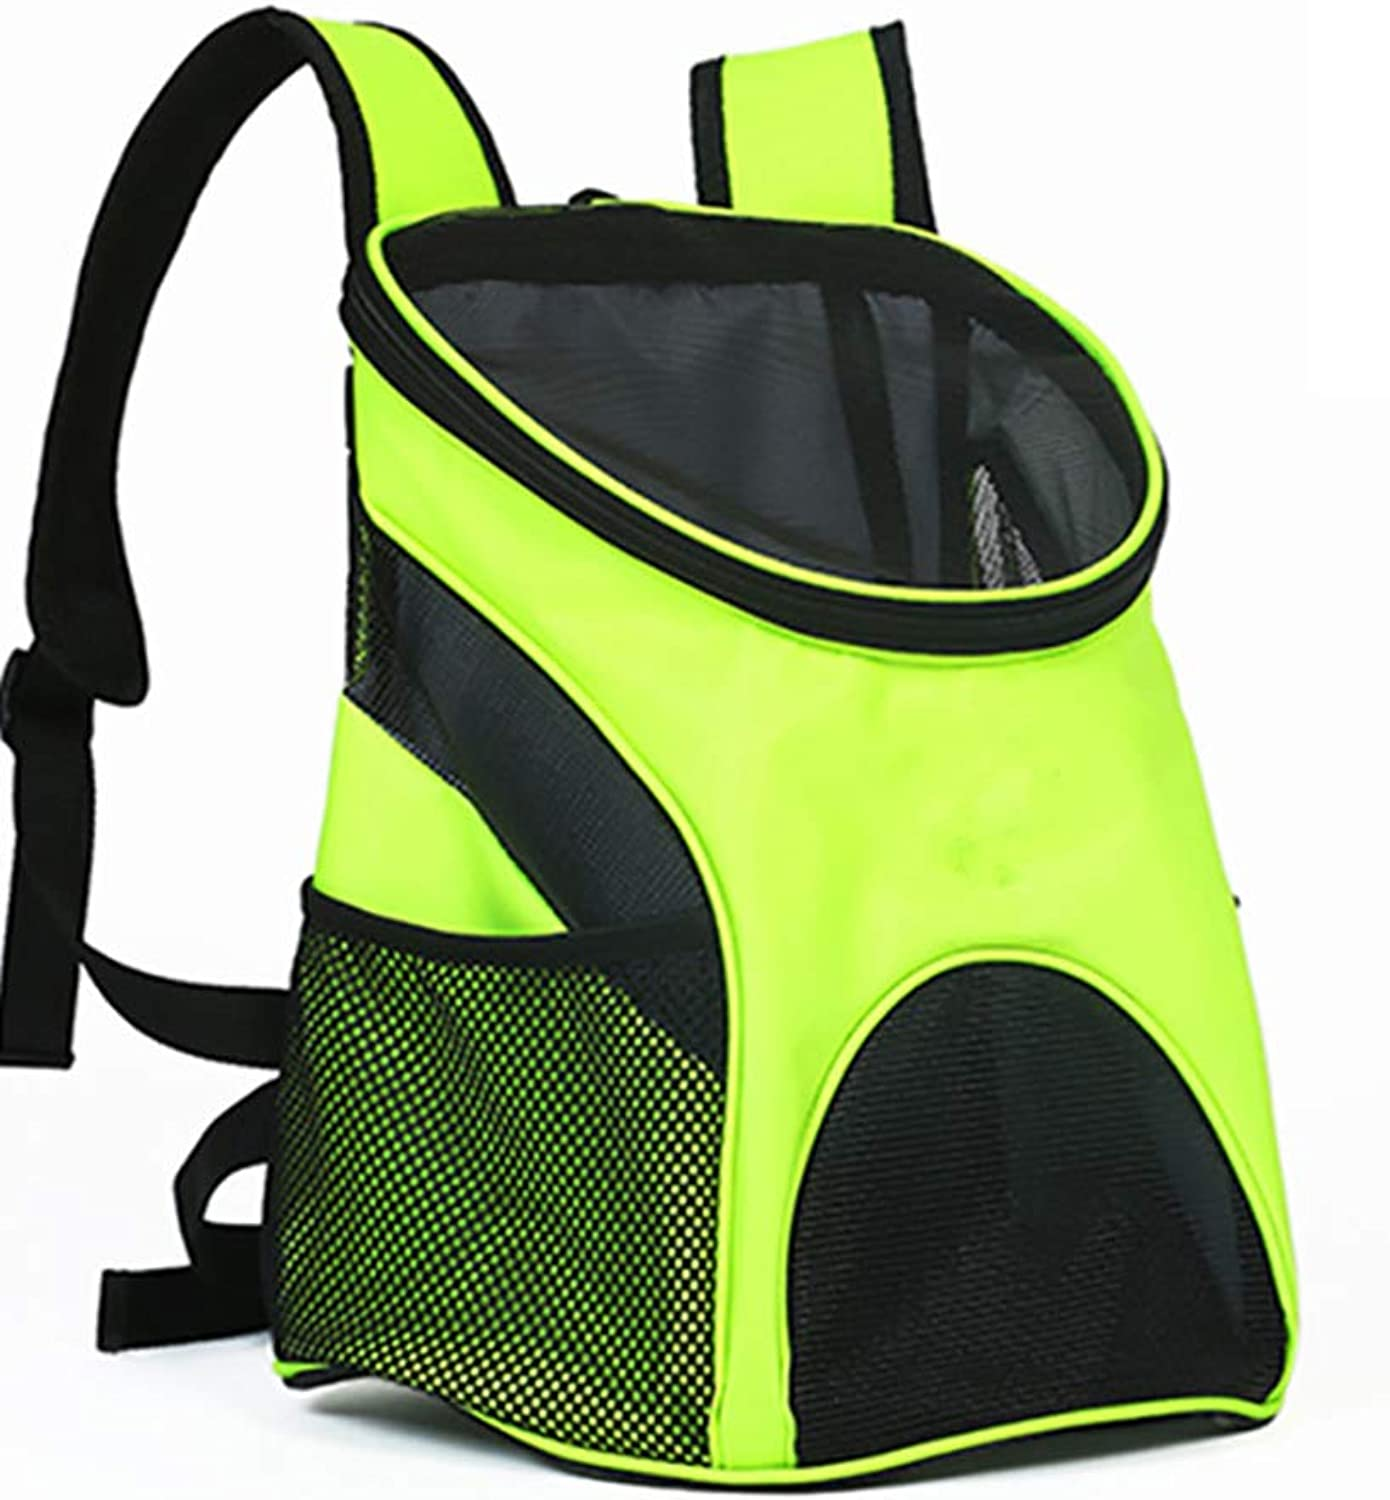 Pet Travel Backpack Foldable Carry Portable Breathable Bag (Fluorescent Yellow)